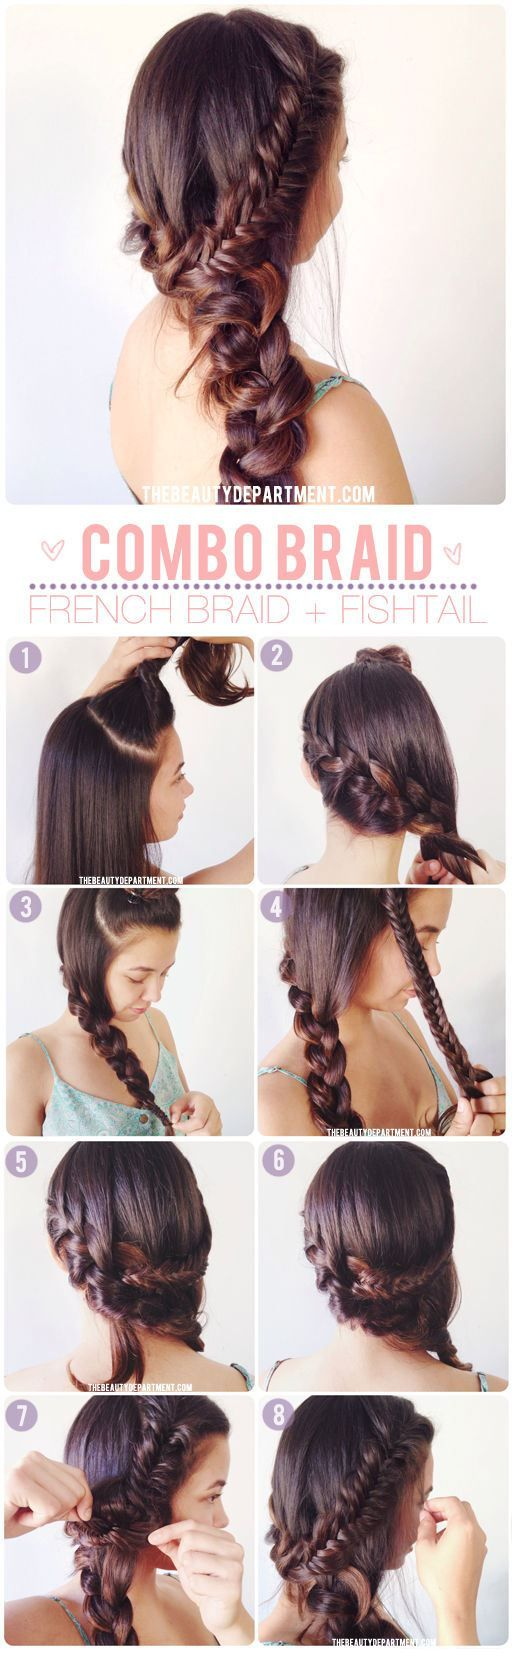 Easy Hairstyles For Long Hair Step By Step Jpg 650 497 Easy Hairstyles Short Hair Styles Easy Stylish Hair